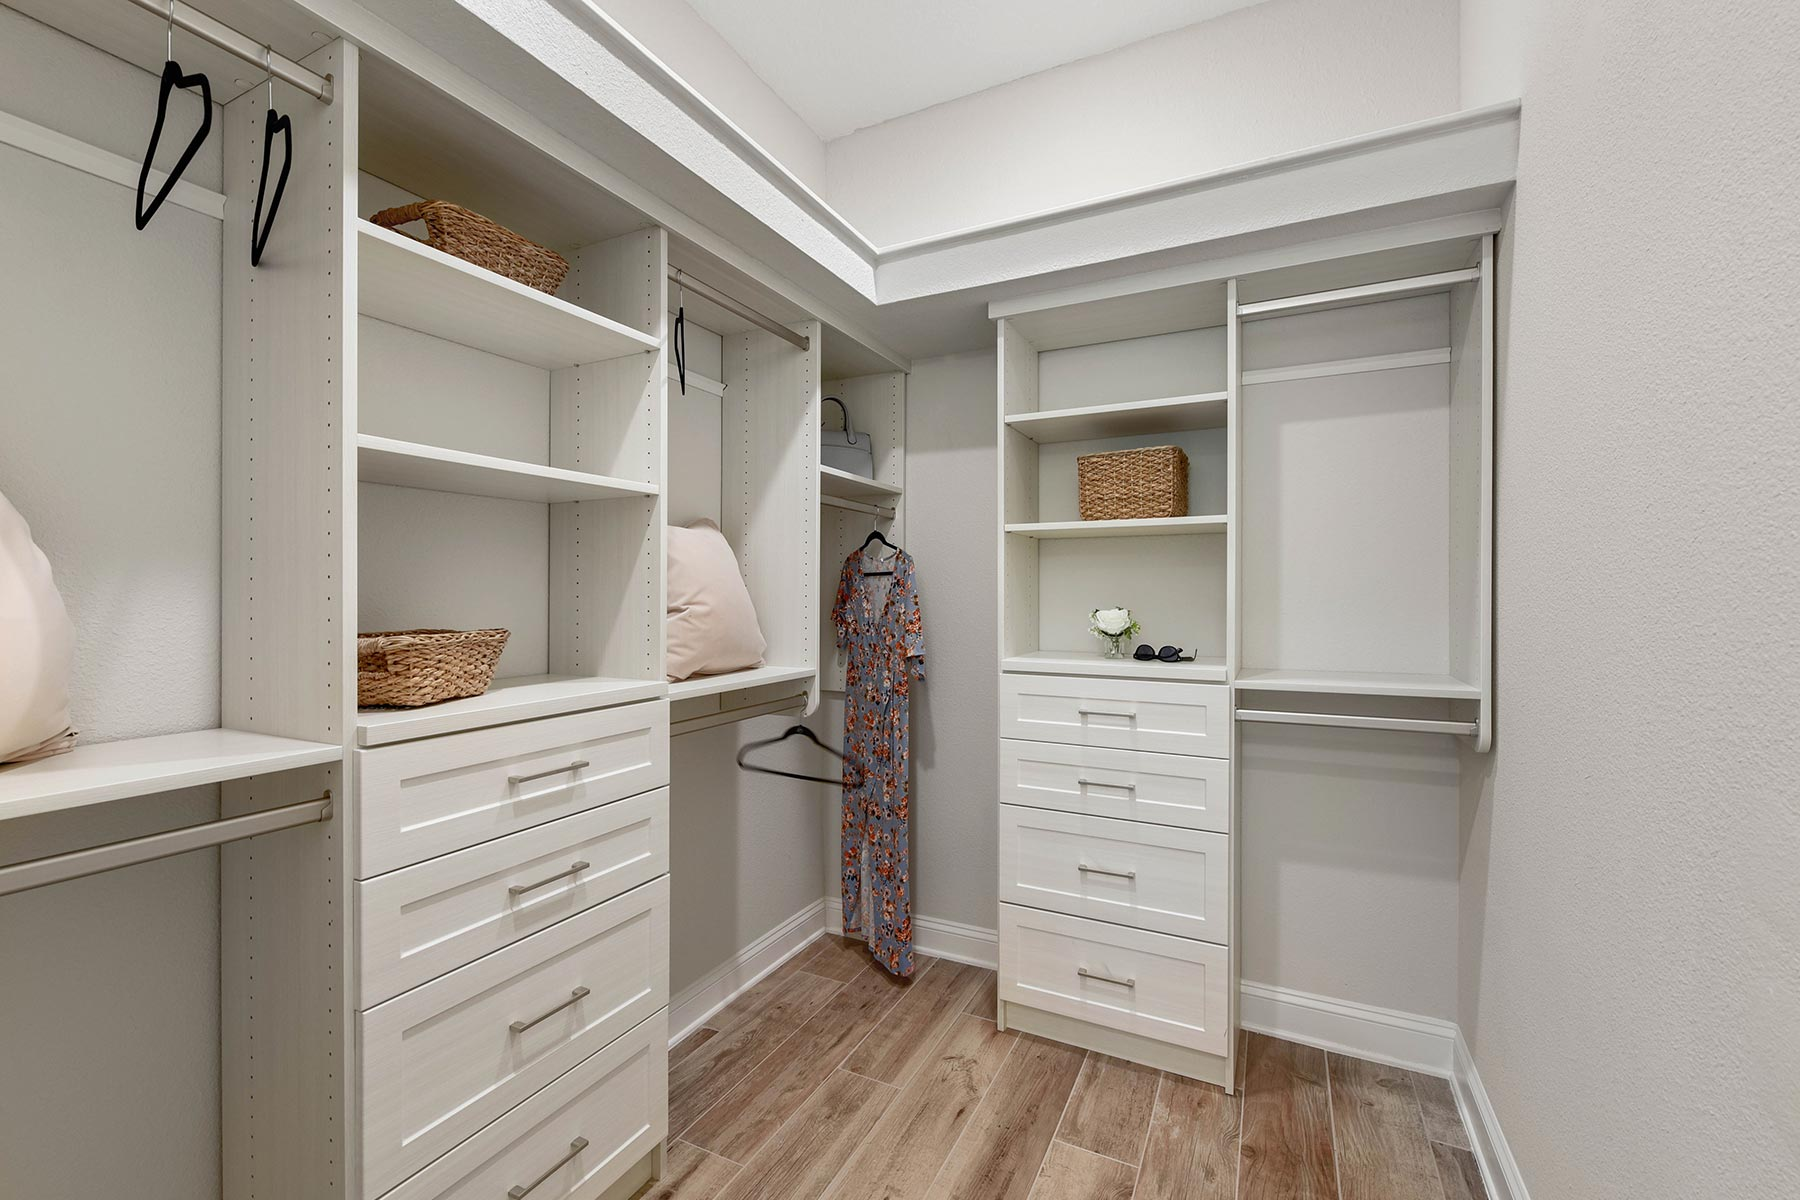 Court Plan Closet at RiverTown - WaterSong in St. Johns Florida by Mattamy Homes